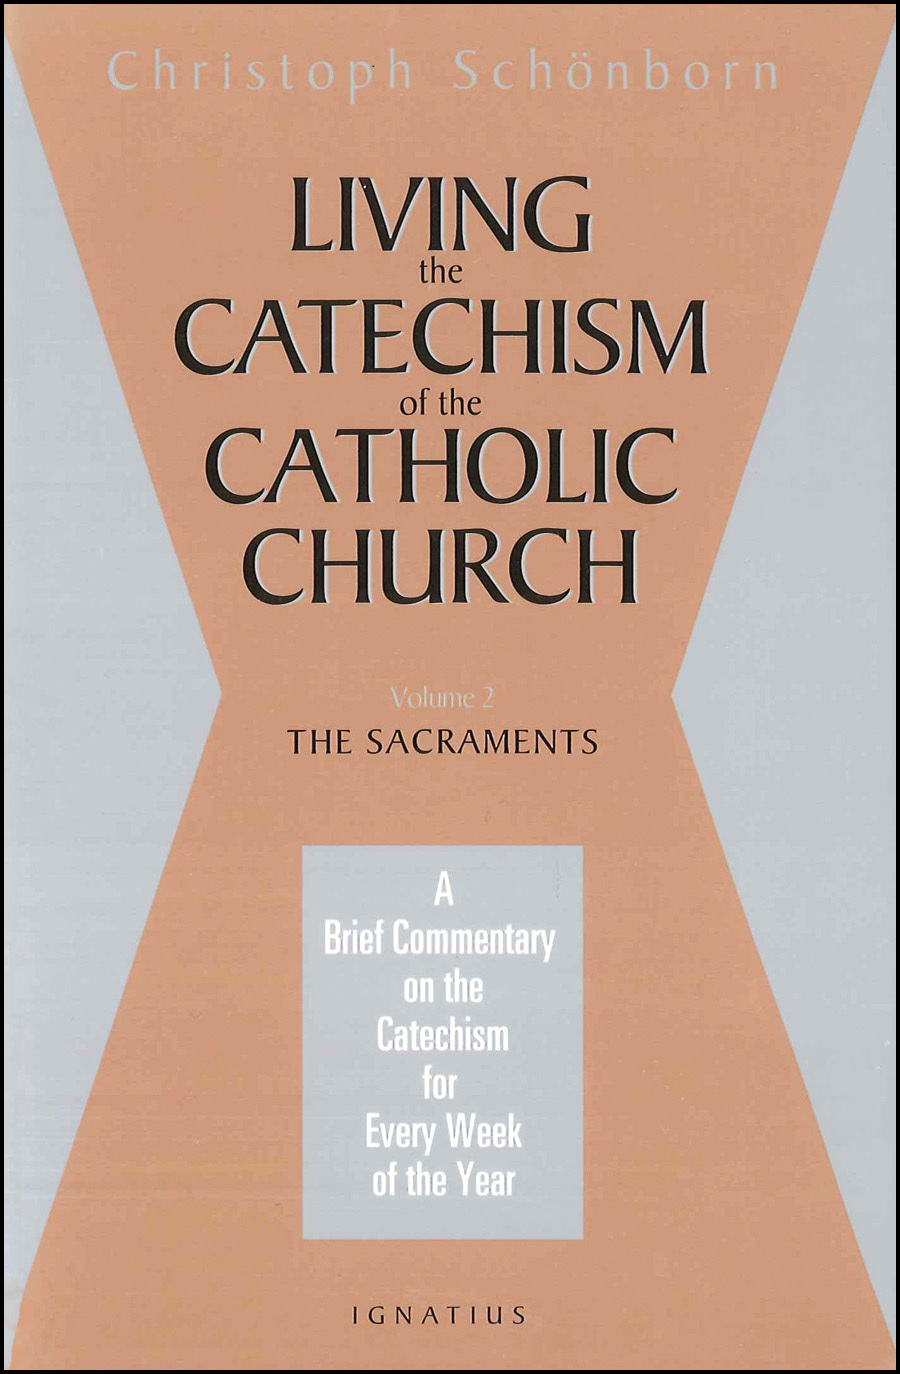 Living the Catechism of the Catholic Church Vol 2